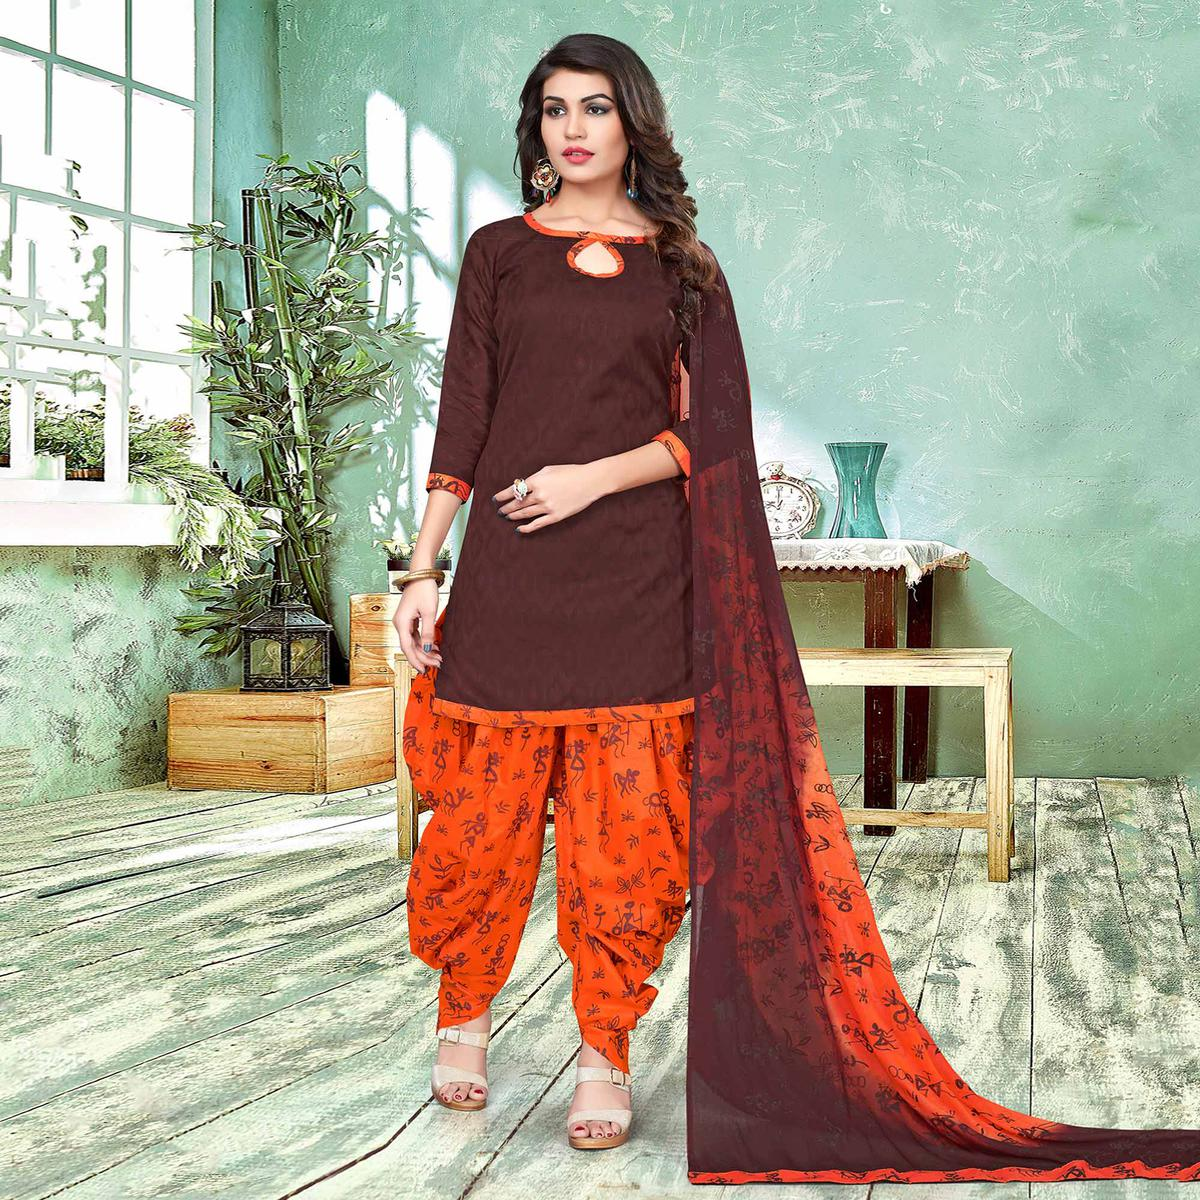 Stylish Brown And Orange Colored Semi-Patiala Style Cotton Jacquard Dress Material